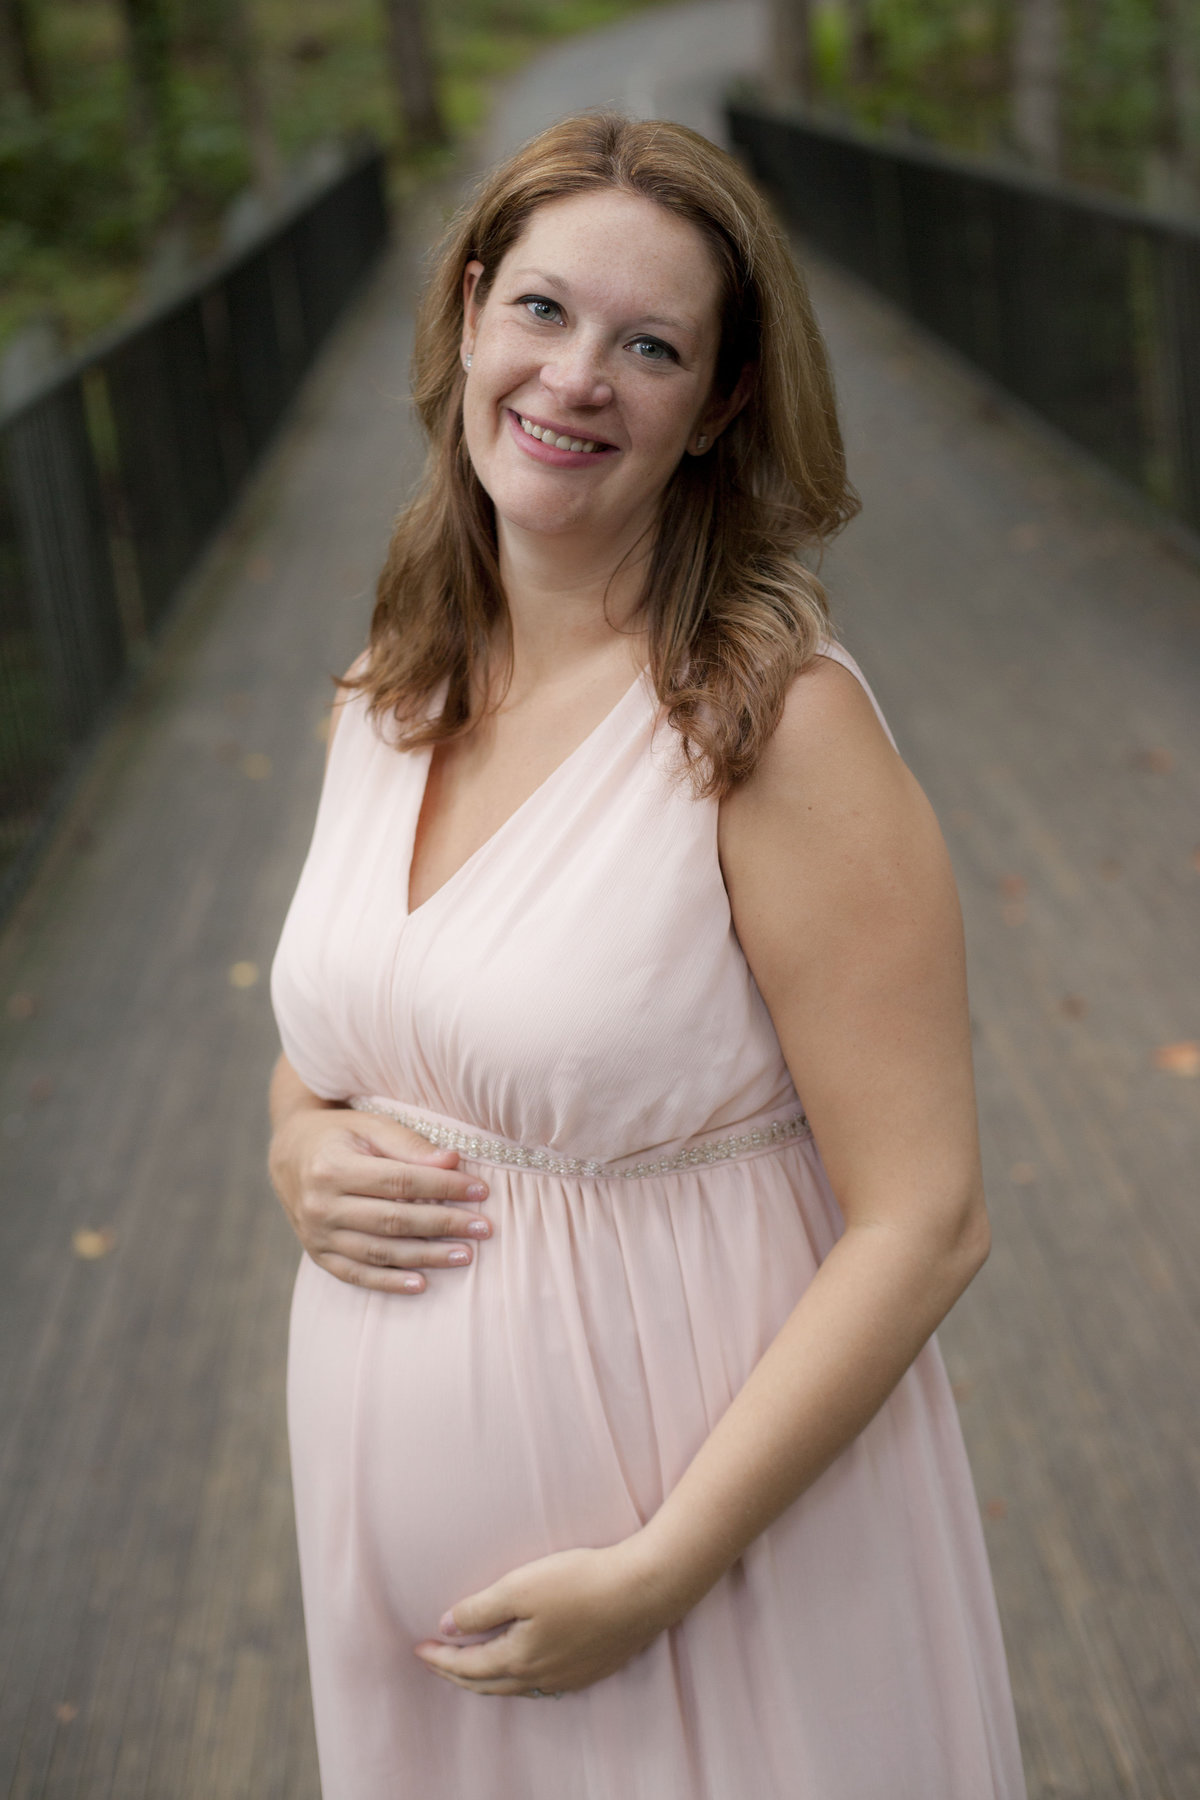 monroe_photographer_a_focused_life_photography_maternity_session_tribble_mill_park_gwinnett_county_pink_dress